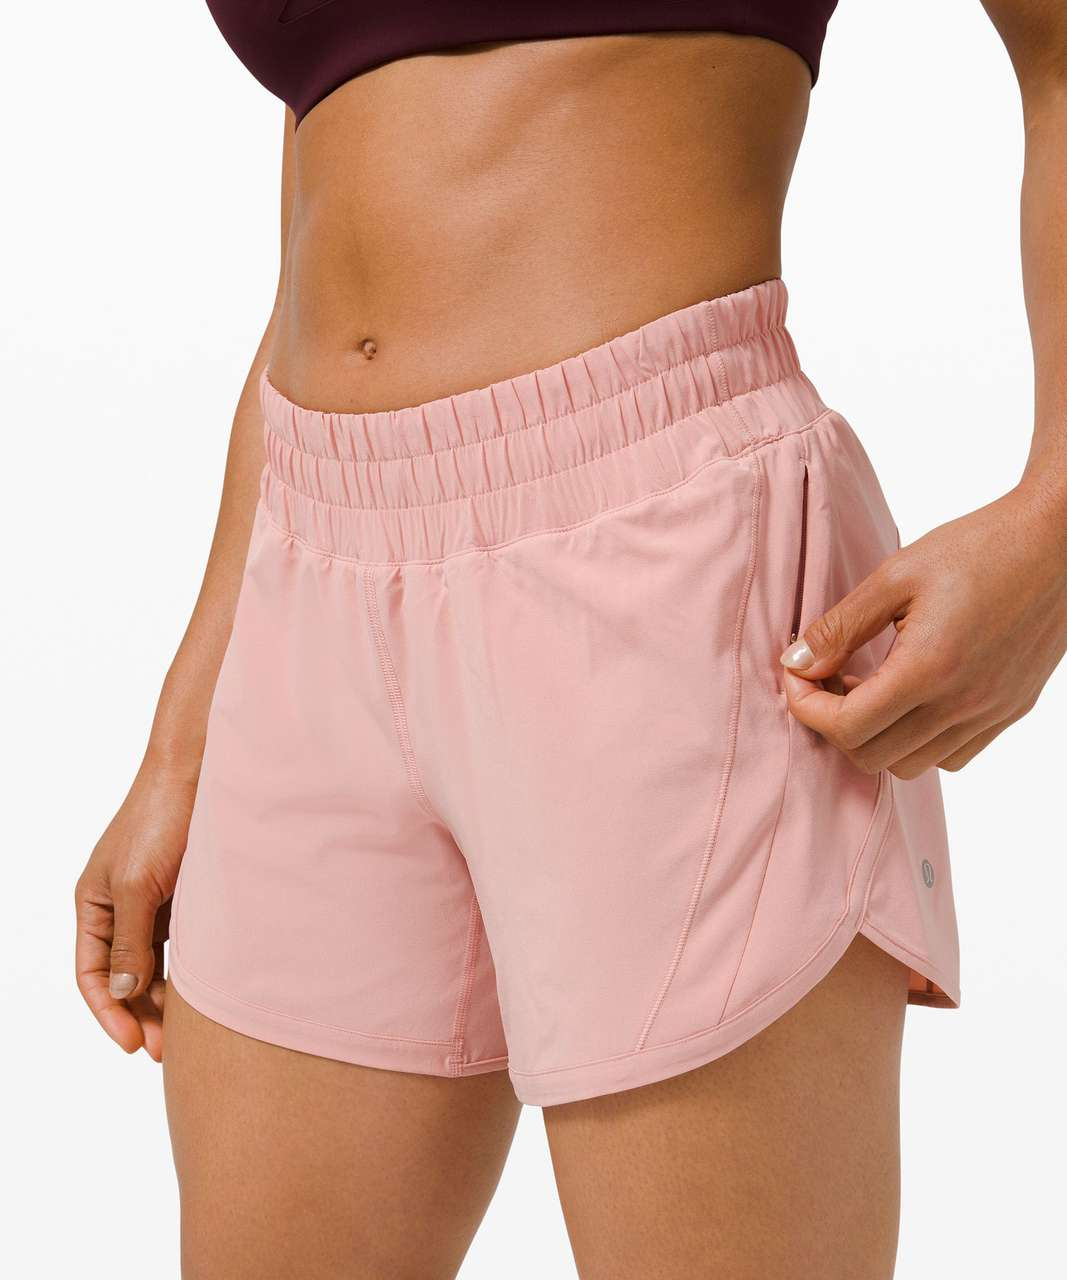 """Lululemon Track That Mid-Rise Lined Short 5"""" - Pink Puff"""